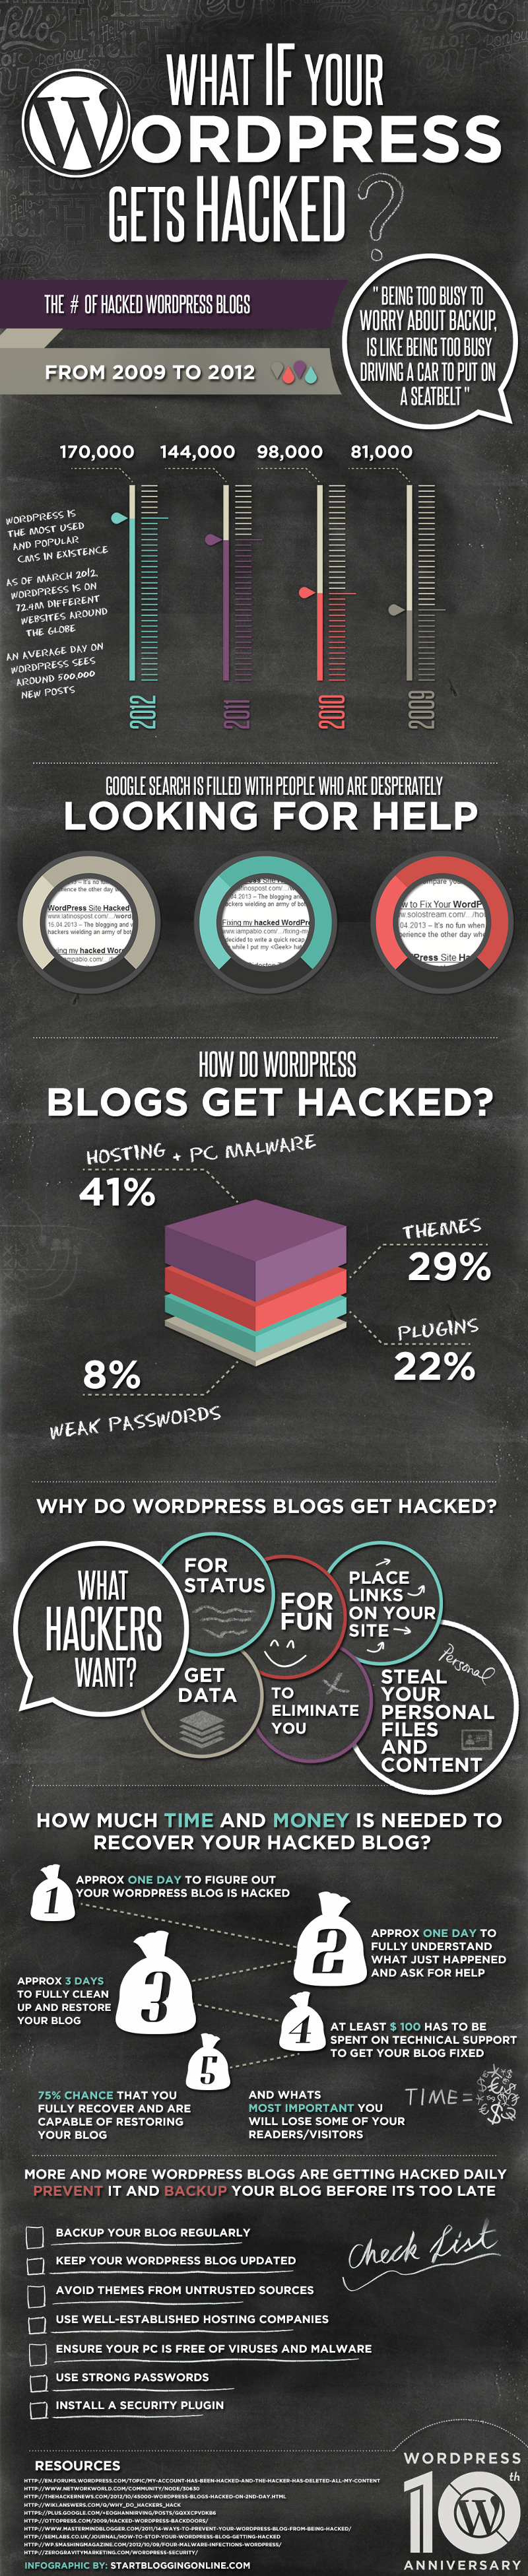 Tips on Fixing a WordPress Blog that Has Been Hacked